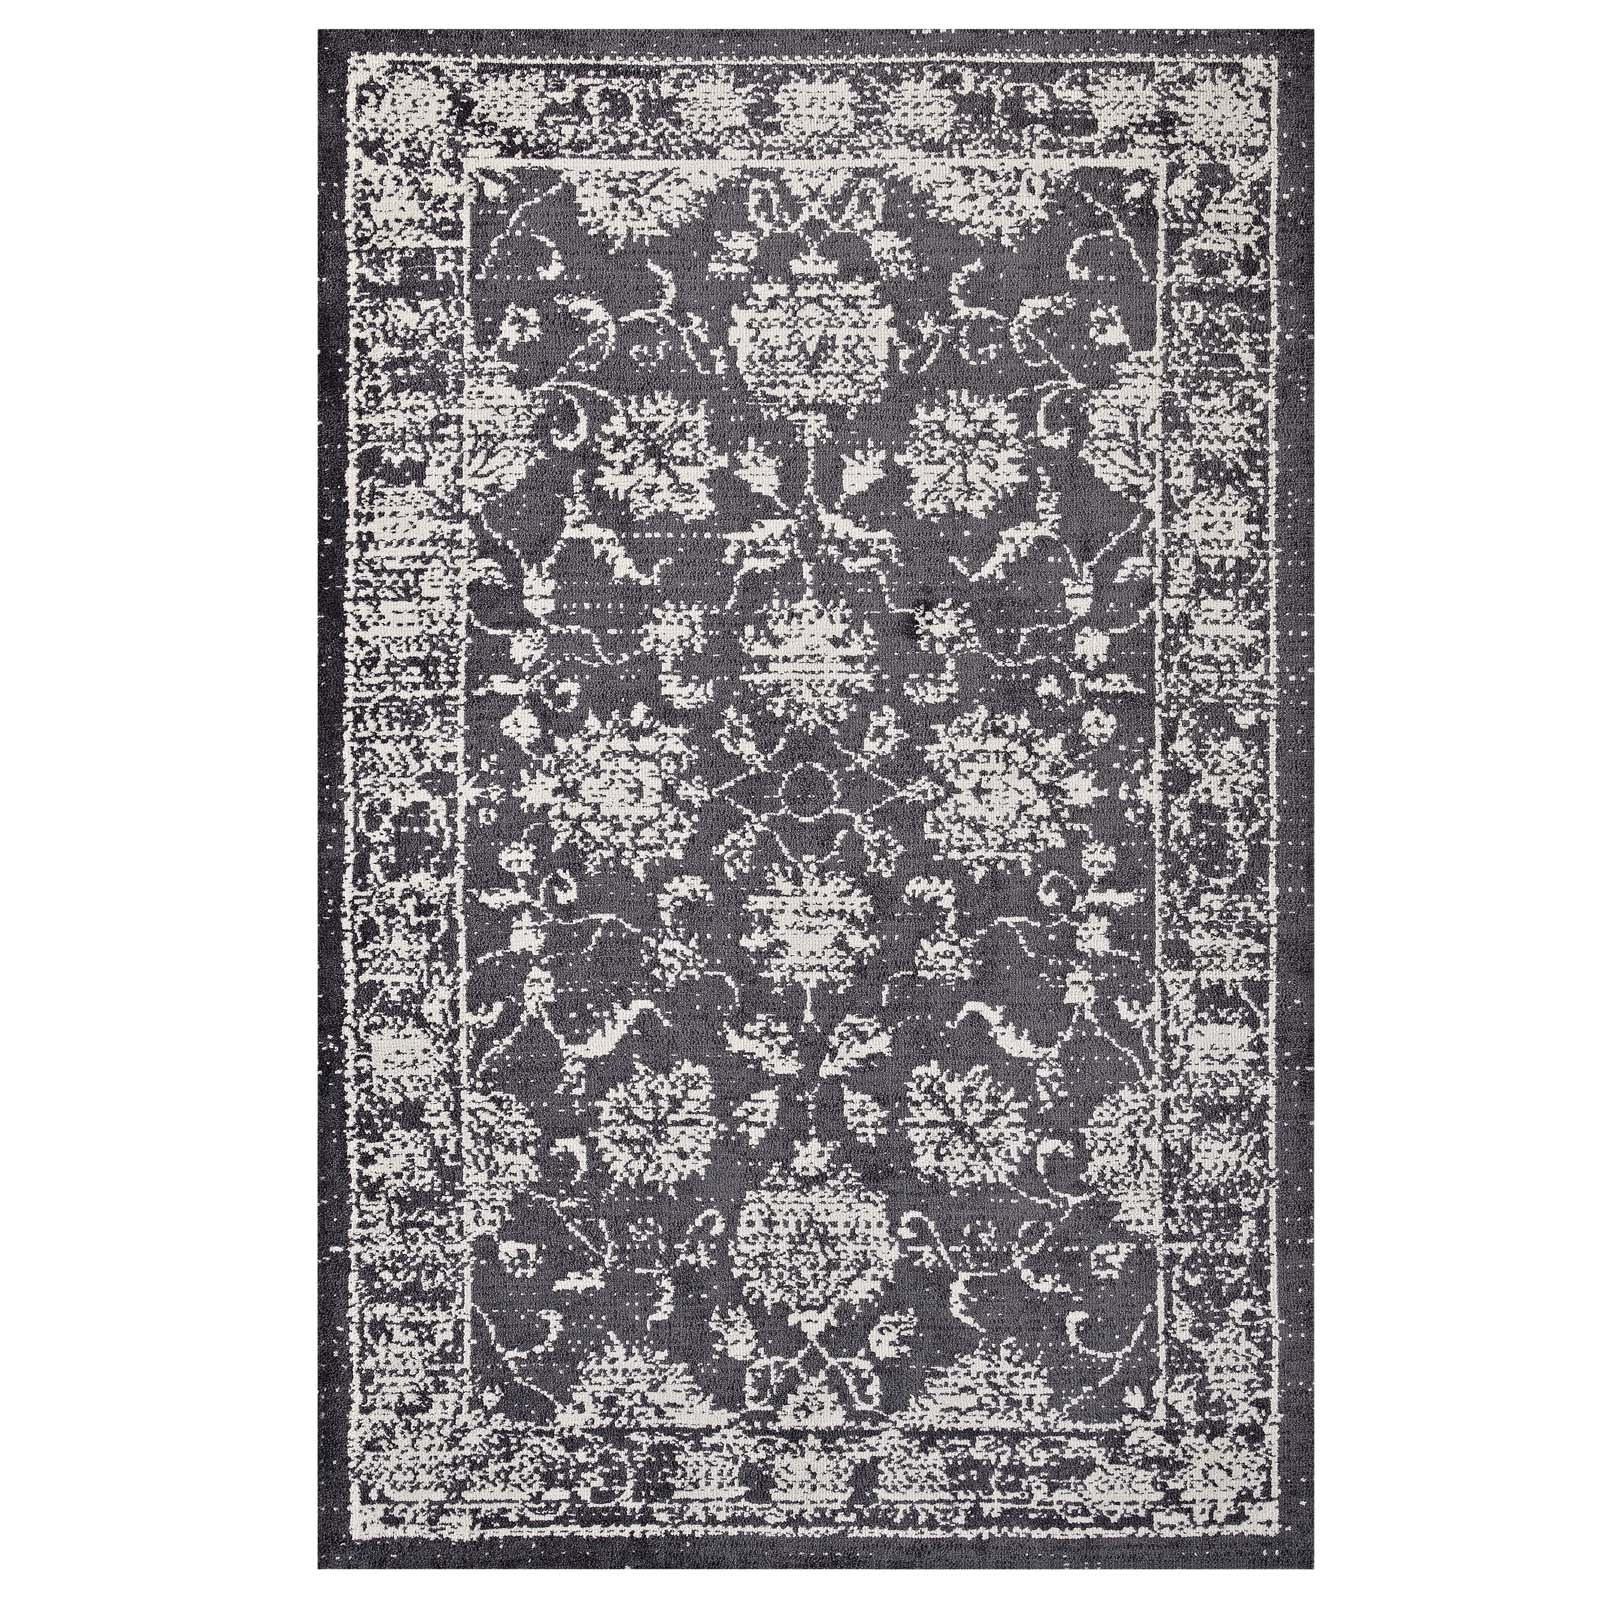 Kazia Distressed Floral Lattice 8x10 Area Rug Dark Gray and Ivory R-1020A-810